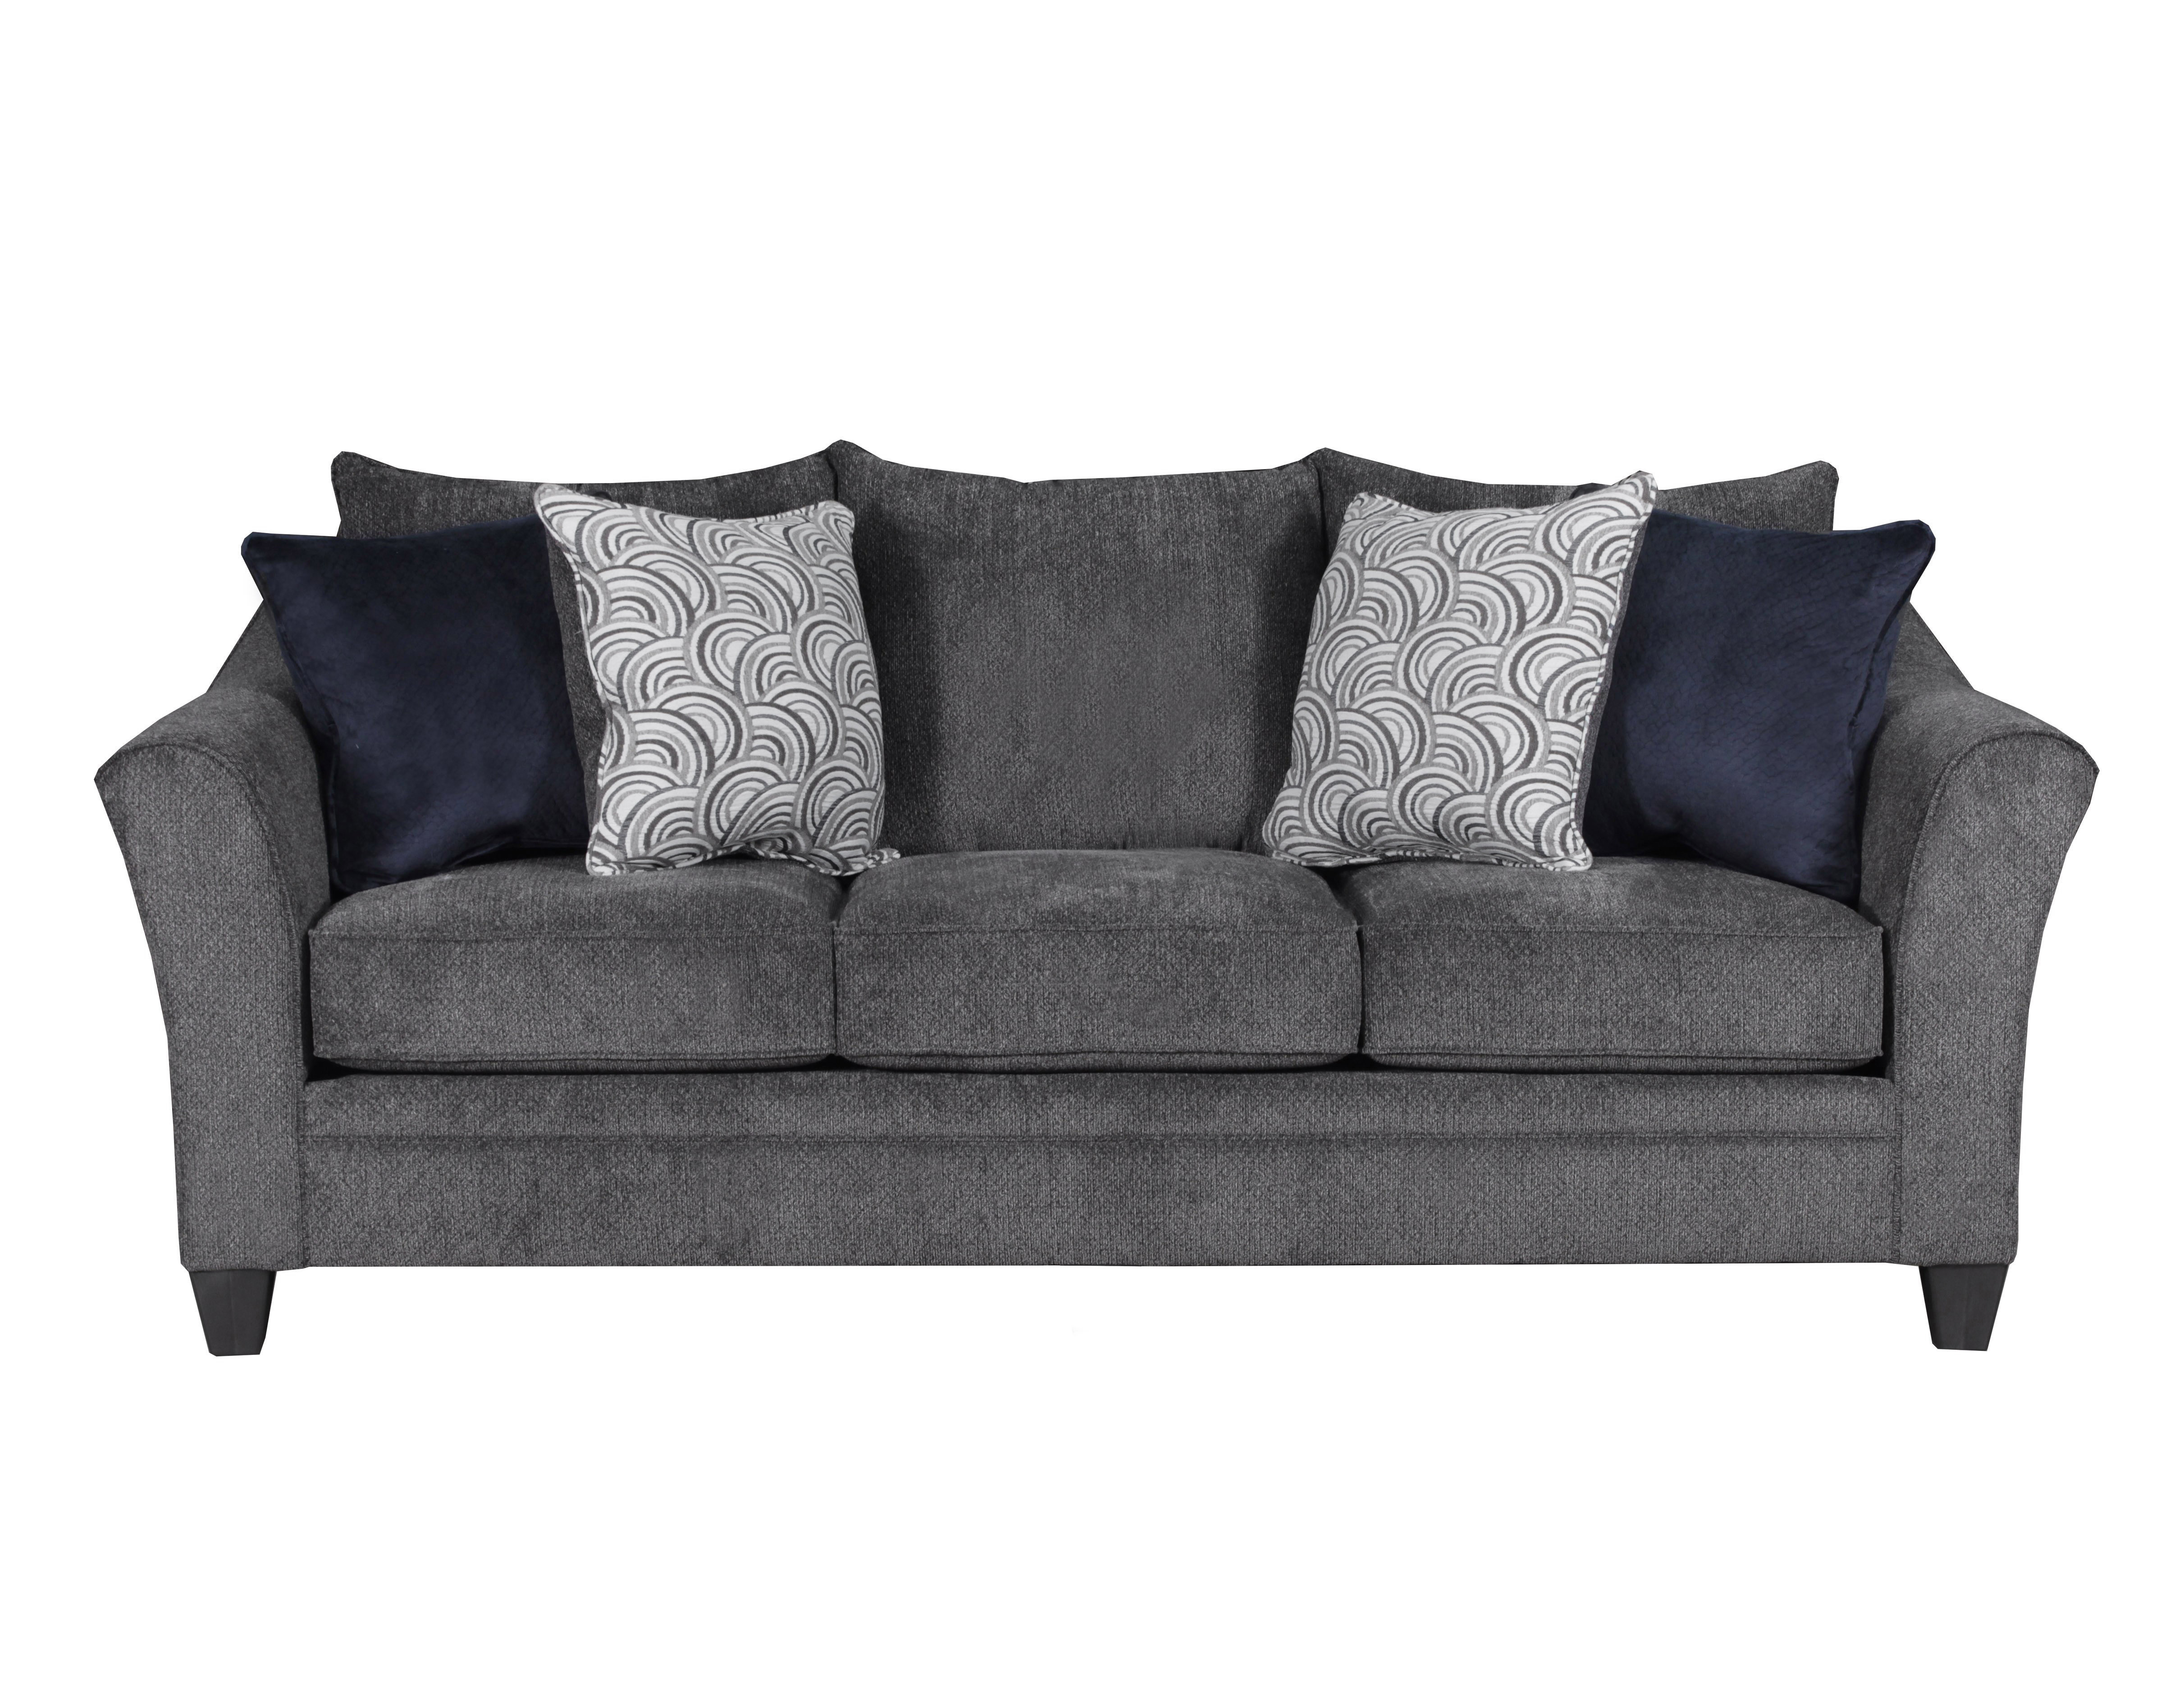 chenille sofa fabric care small sleeper modern 6485 albany pewter – awfco catalog site